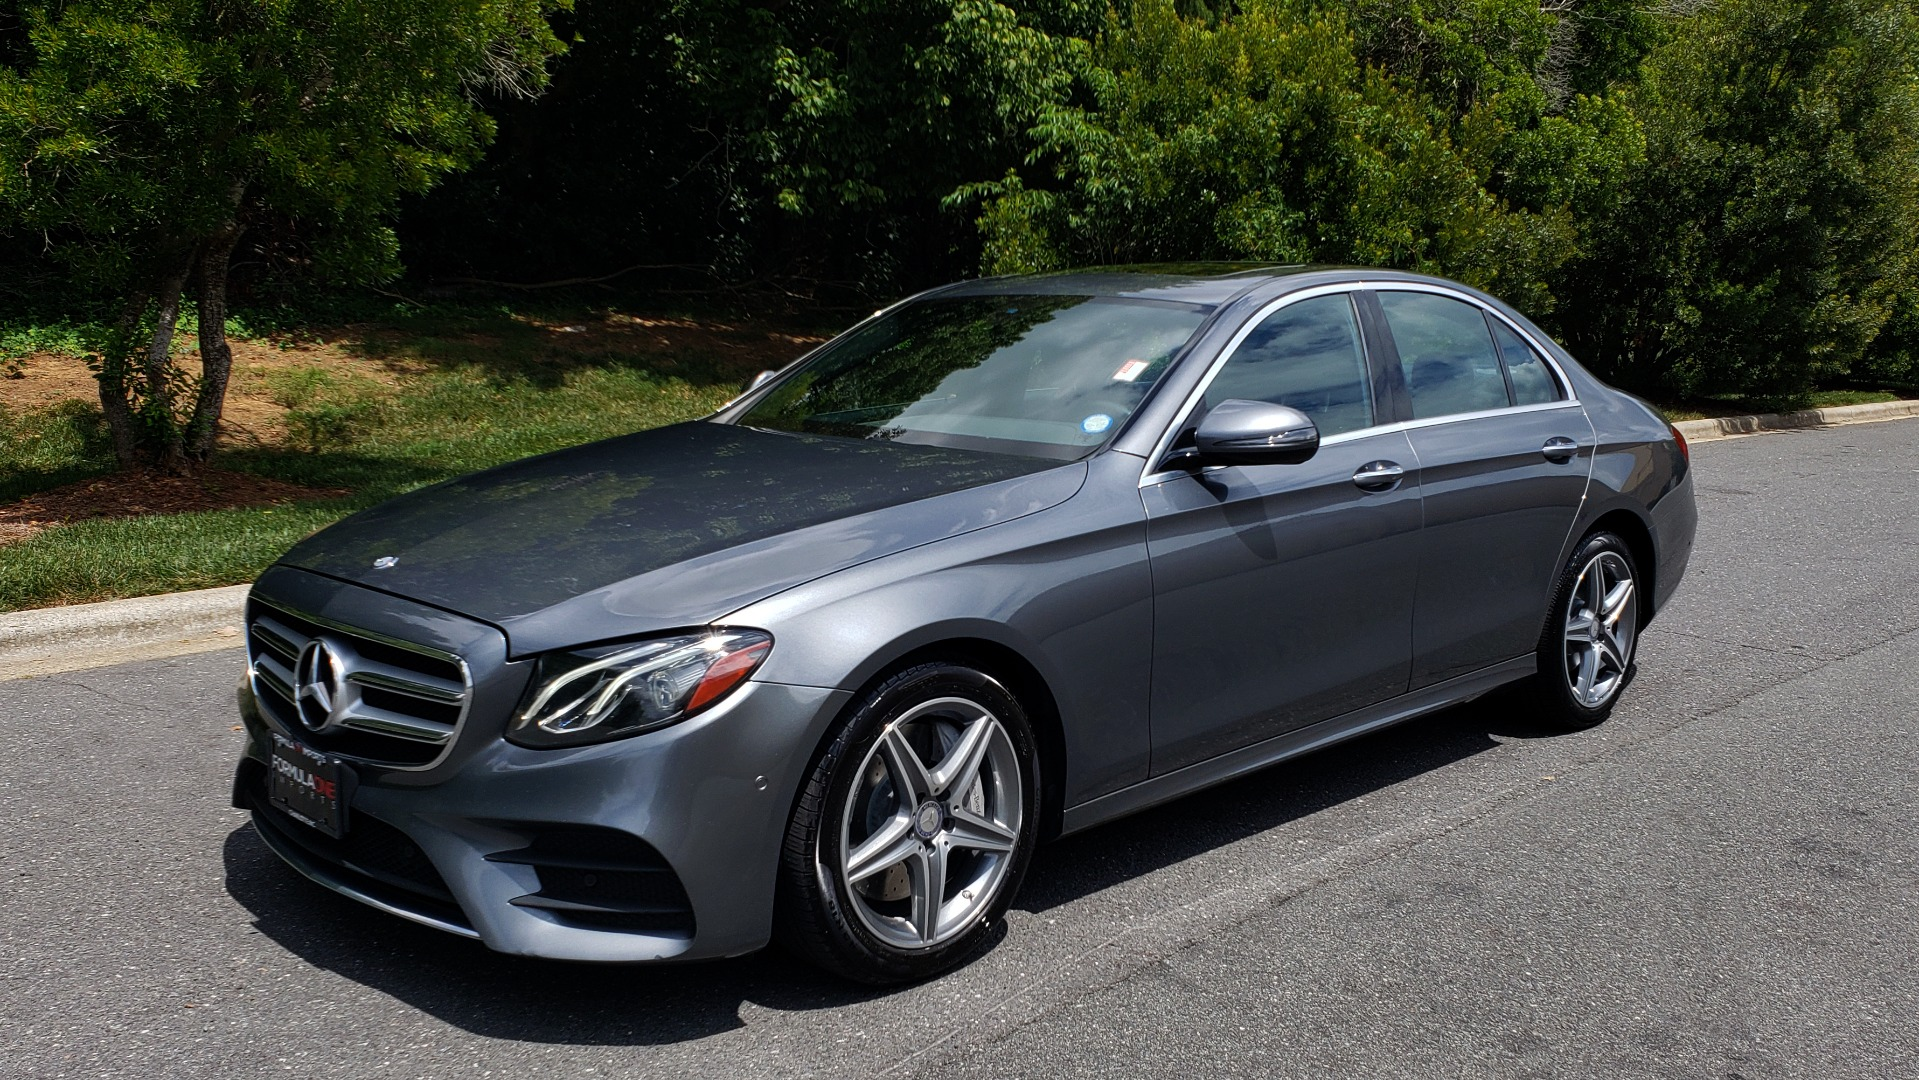 Used 2017 Mercedes-Benz E-Class E 300 4MATIC PREMIUM / SPORT / NAV / BURMESTER / HTD STS / REARVIEW for sale $30,495 at Formula Imports in Charlotte NC 28227 1